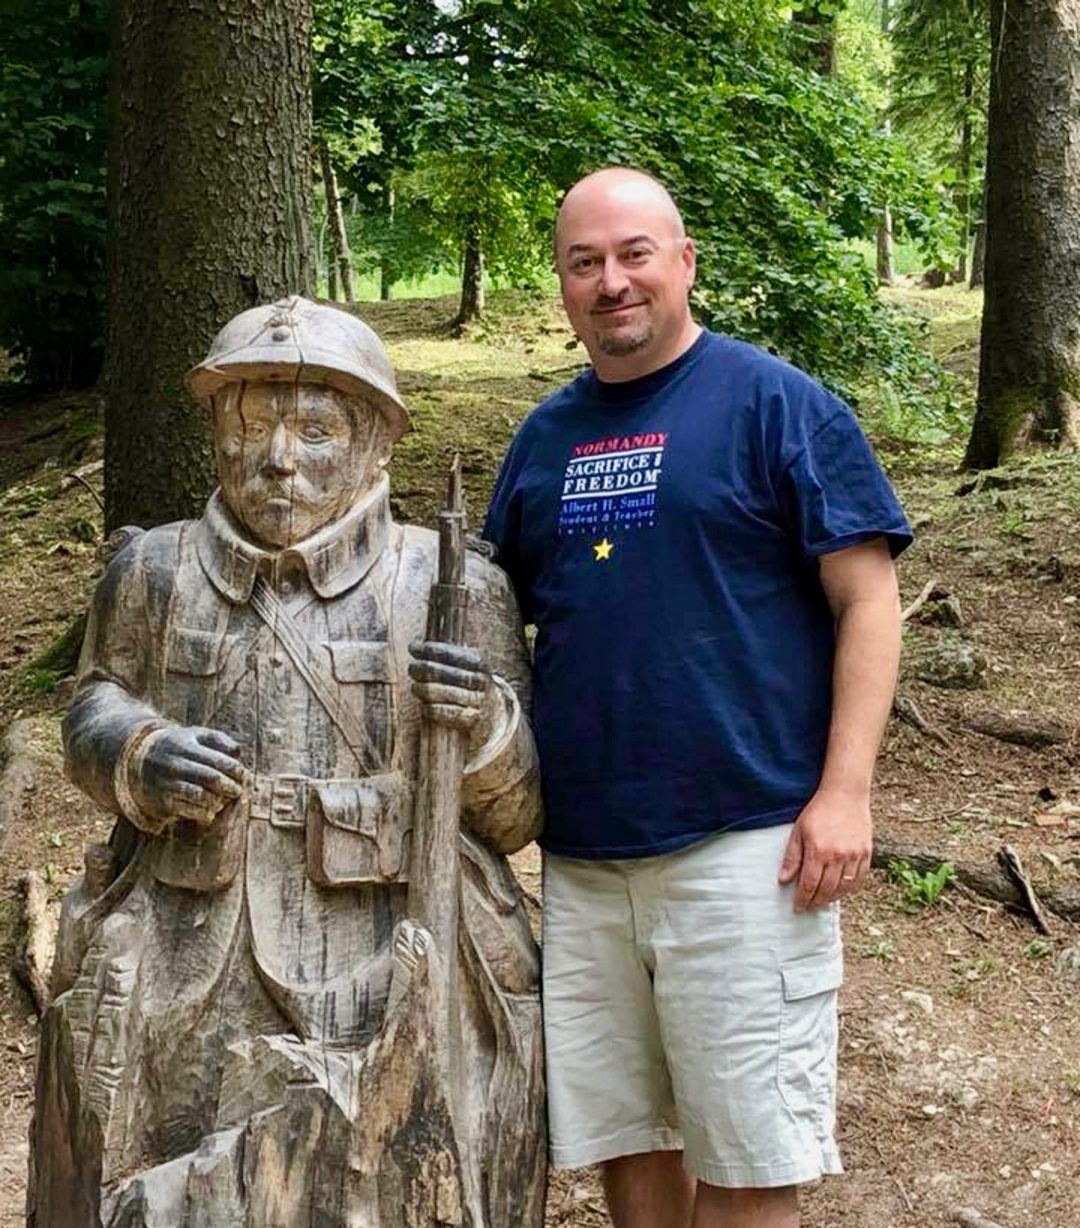 Teacher travel grants for History and Social Studies educators: 6 funded global education programs! In the destroyed village of Fleury near Verdun, France. The village was completely destroyed in the Battle of Verdun in 1916. Someone has carved a French poilu into a stump in the village.